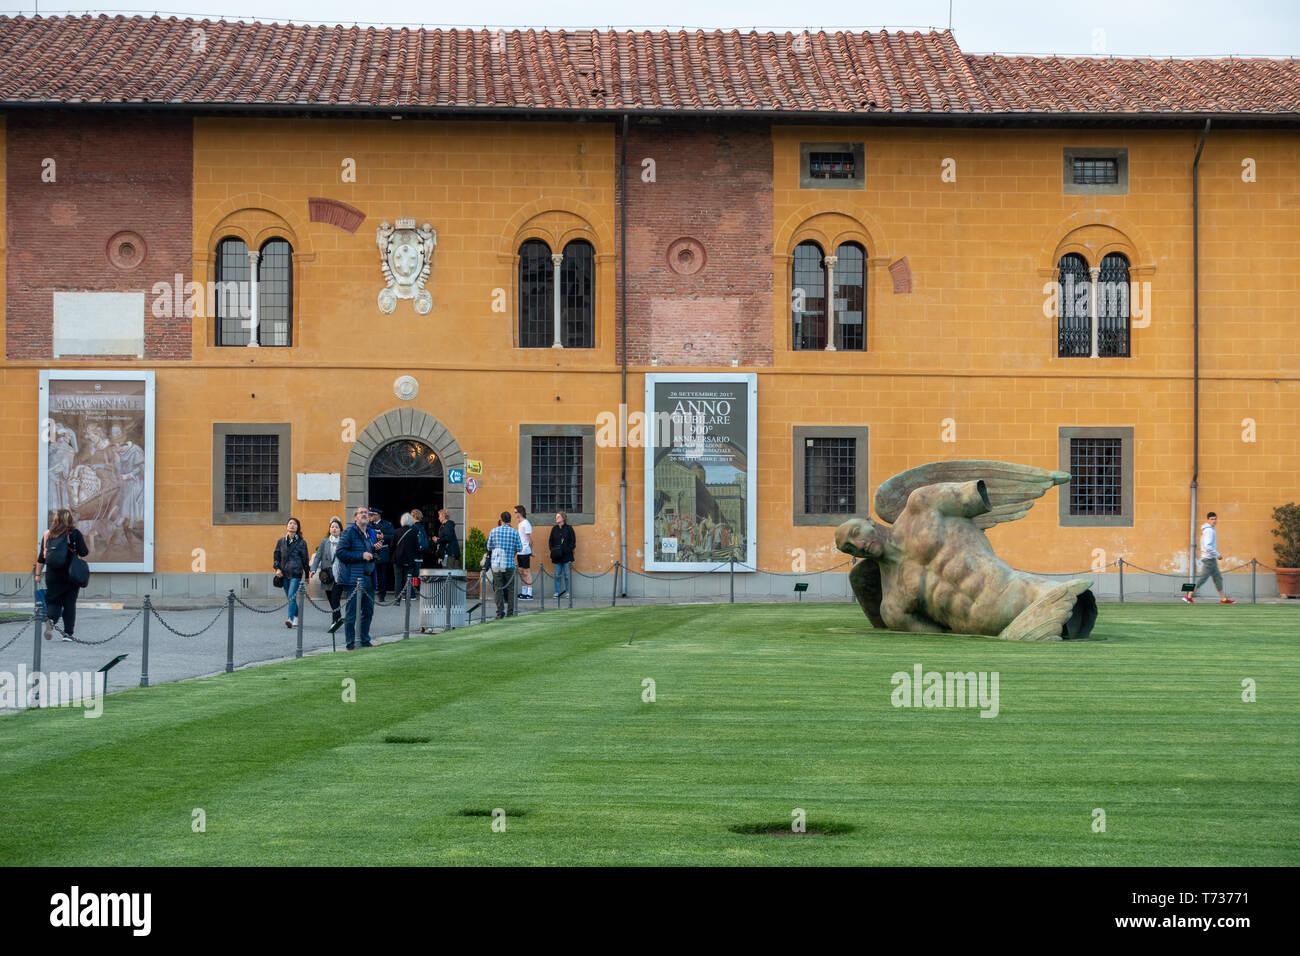 PISA, TUSCANY/ITALY  - APRIL 17 : Fallen Angel at the Square of Miracles in Pisa Tuscany Italy on April 17, 2019. Unidentified people Stock Photo